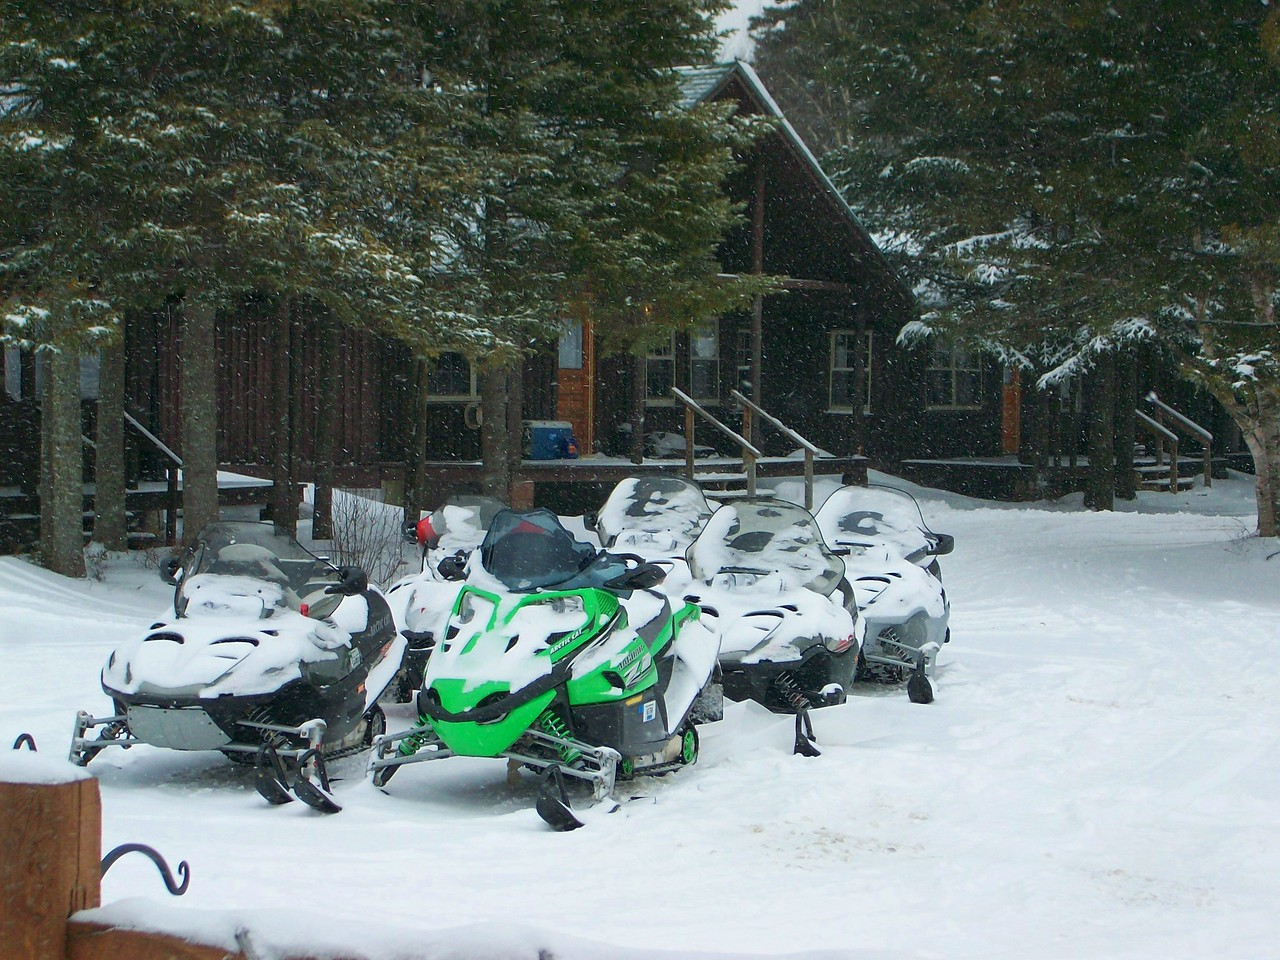 Sleds ready for another day on the trails.